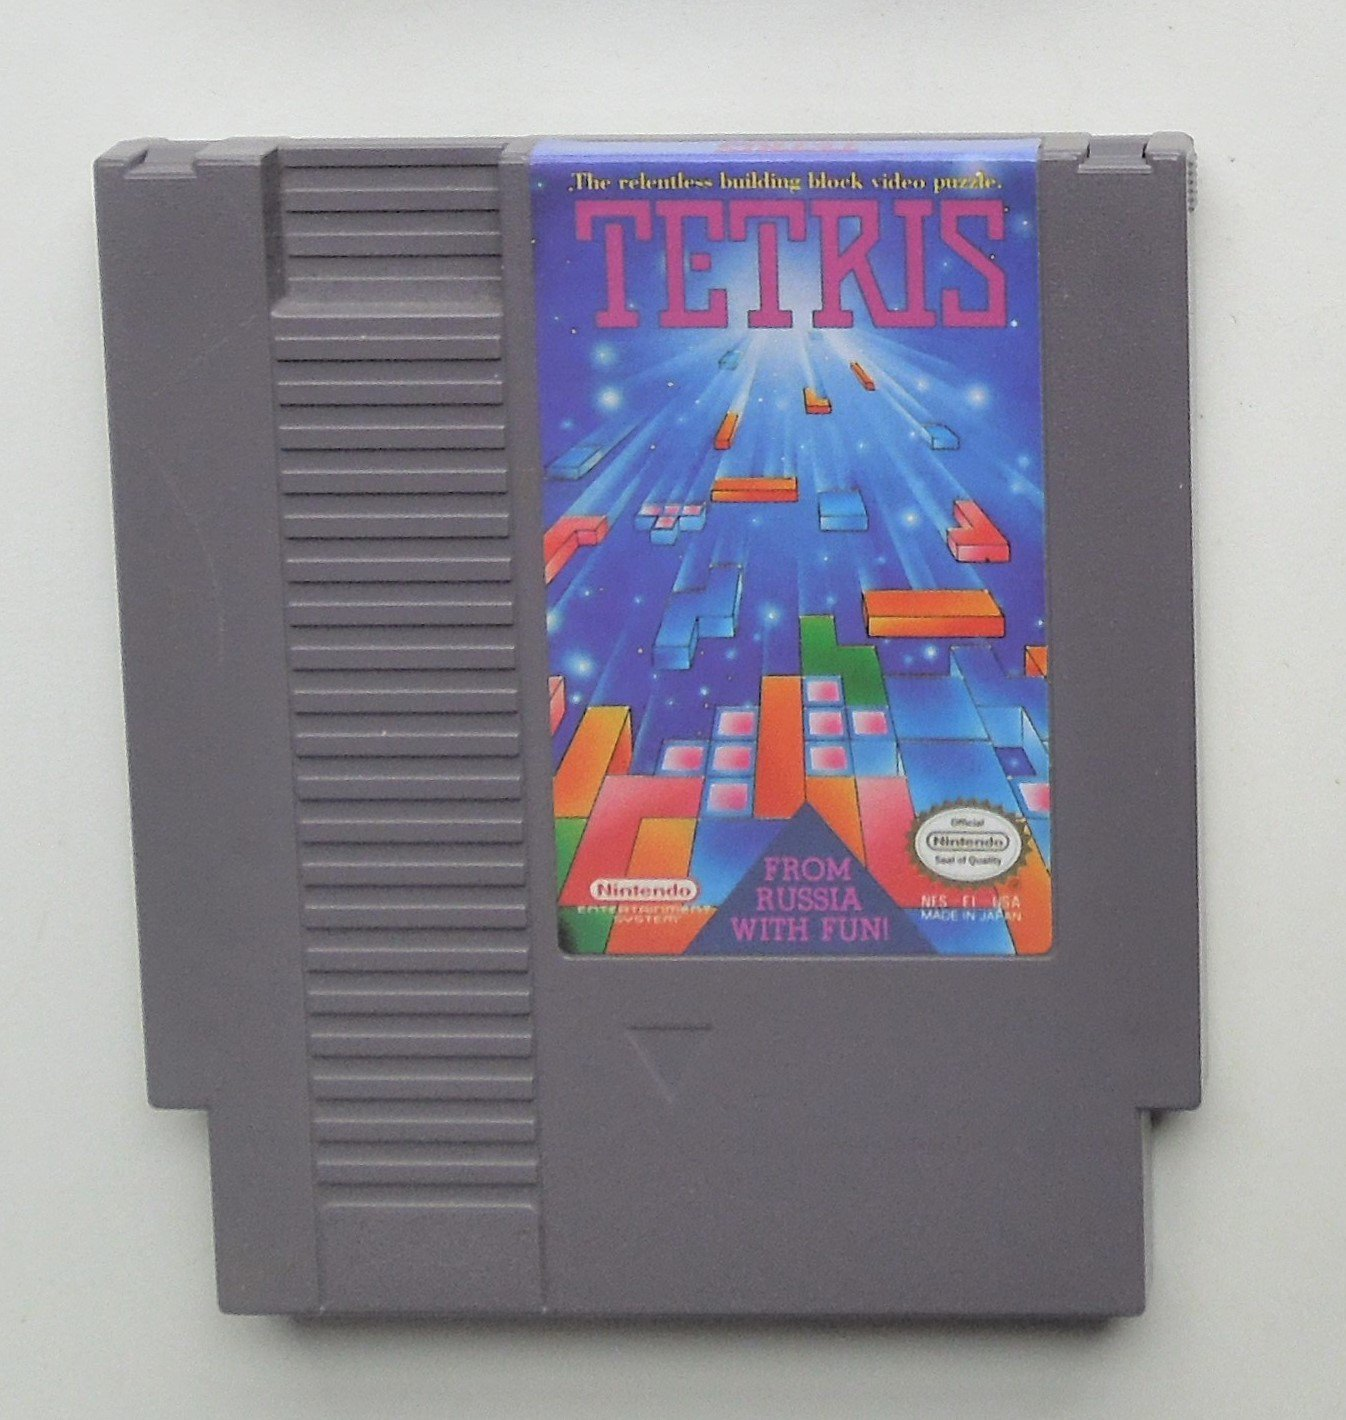 1988 Nintendo Tetris For The Classic NES Nintendo Entertainment System